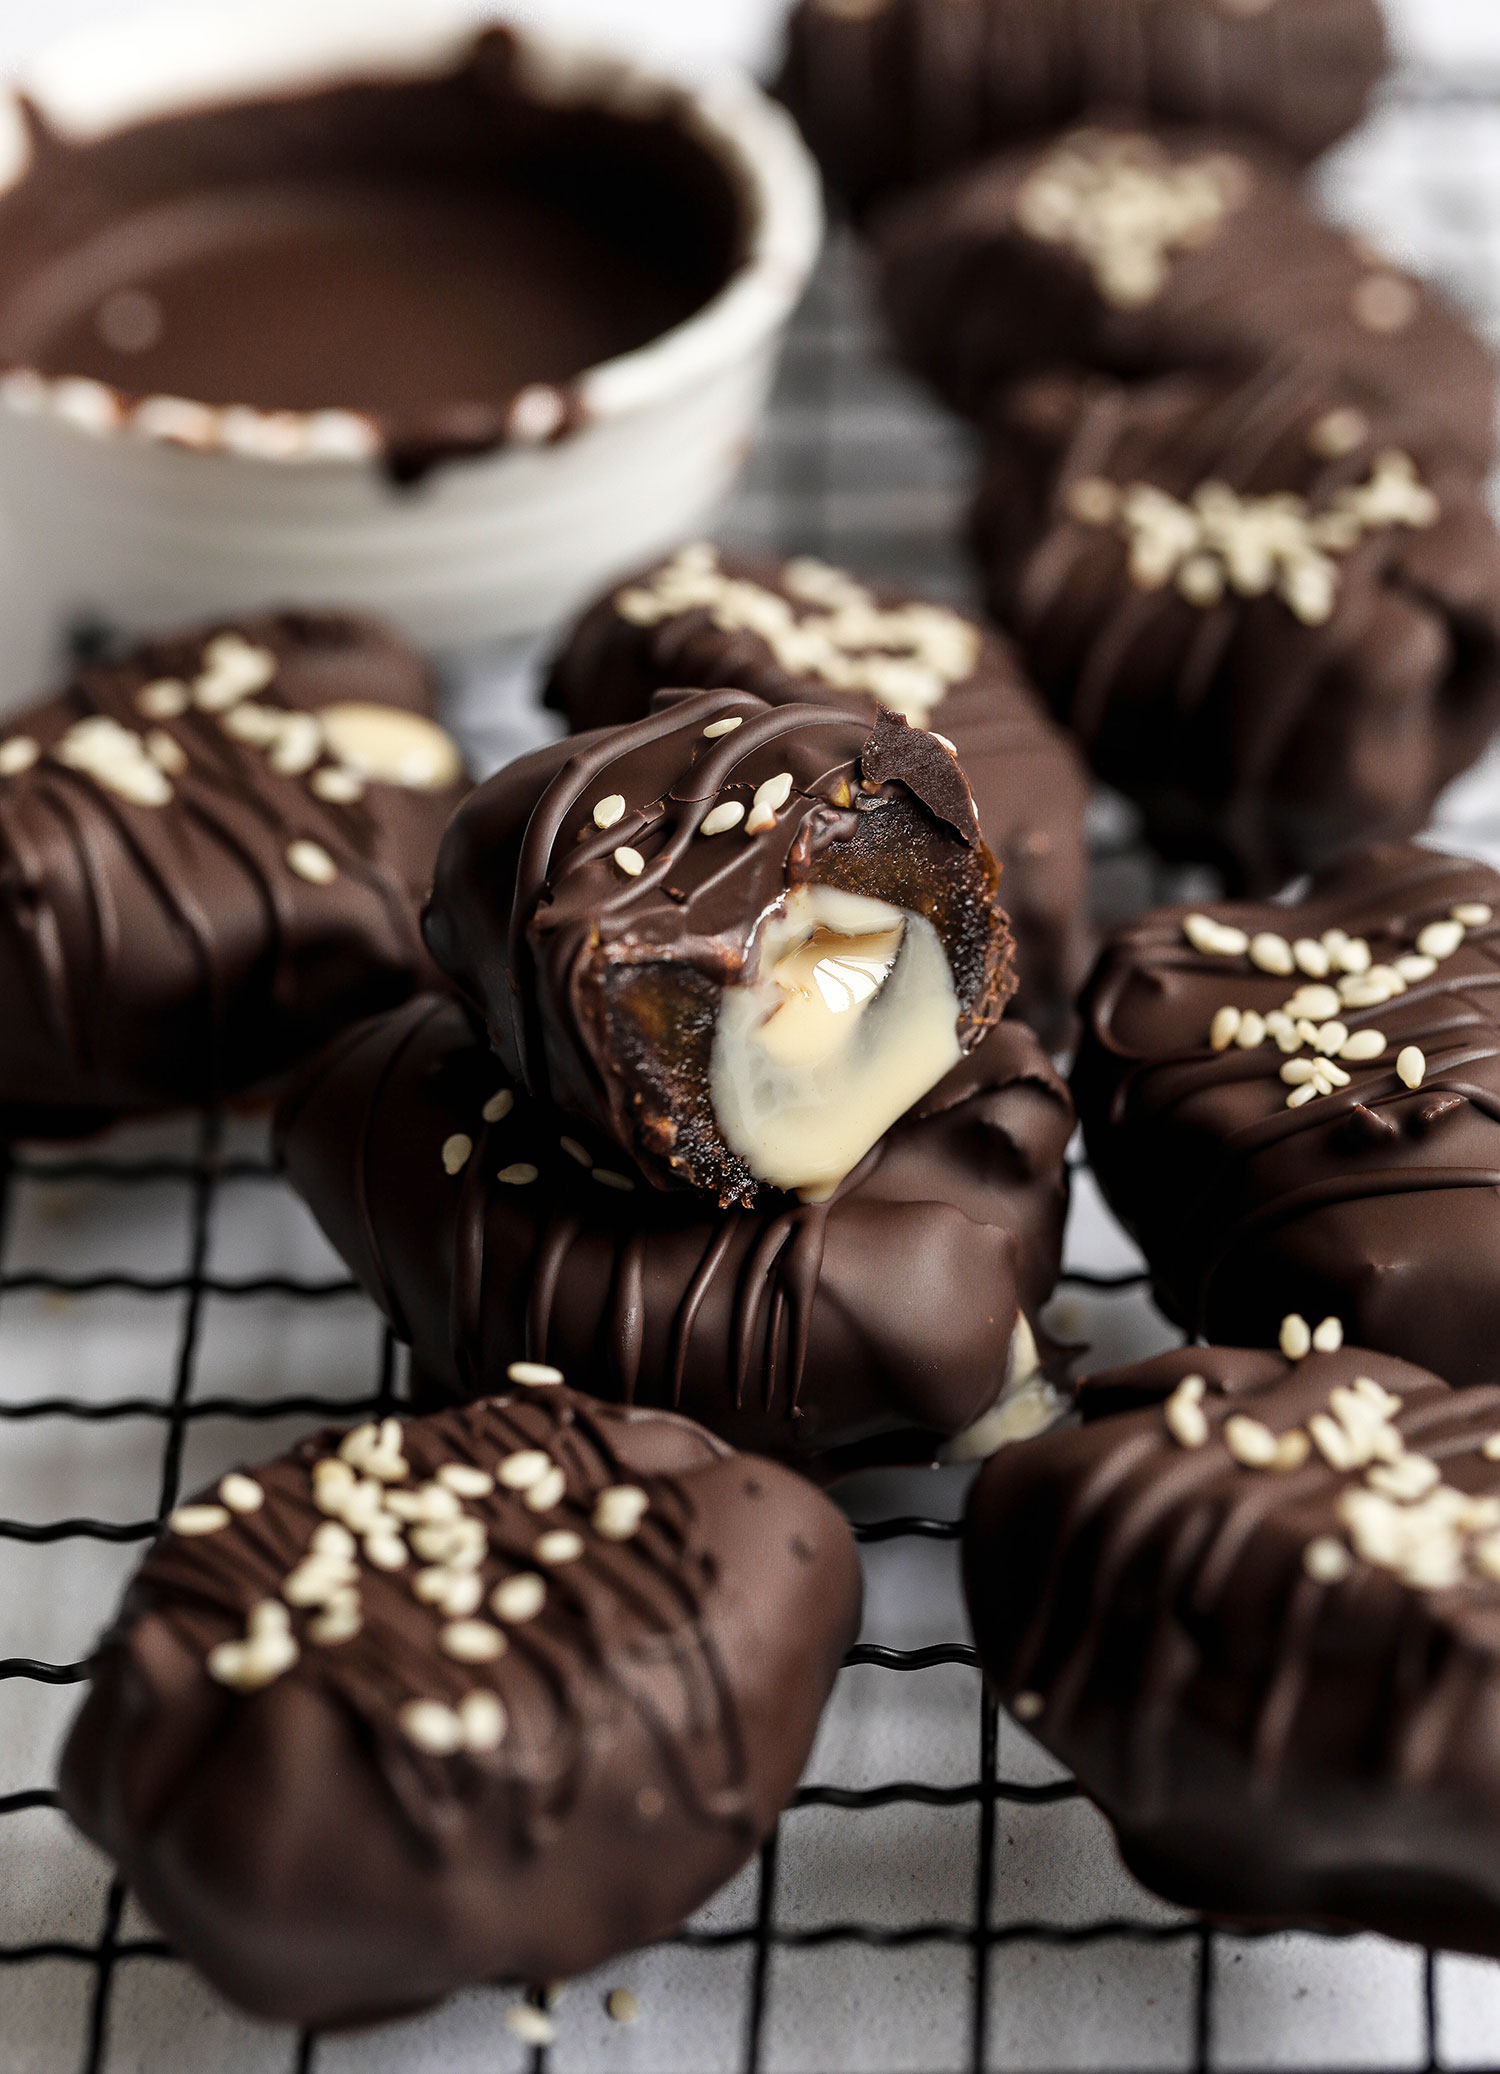 Tahini Stuffed Chocolate Covered Dates